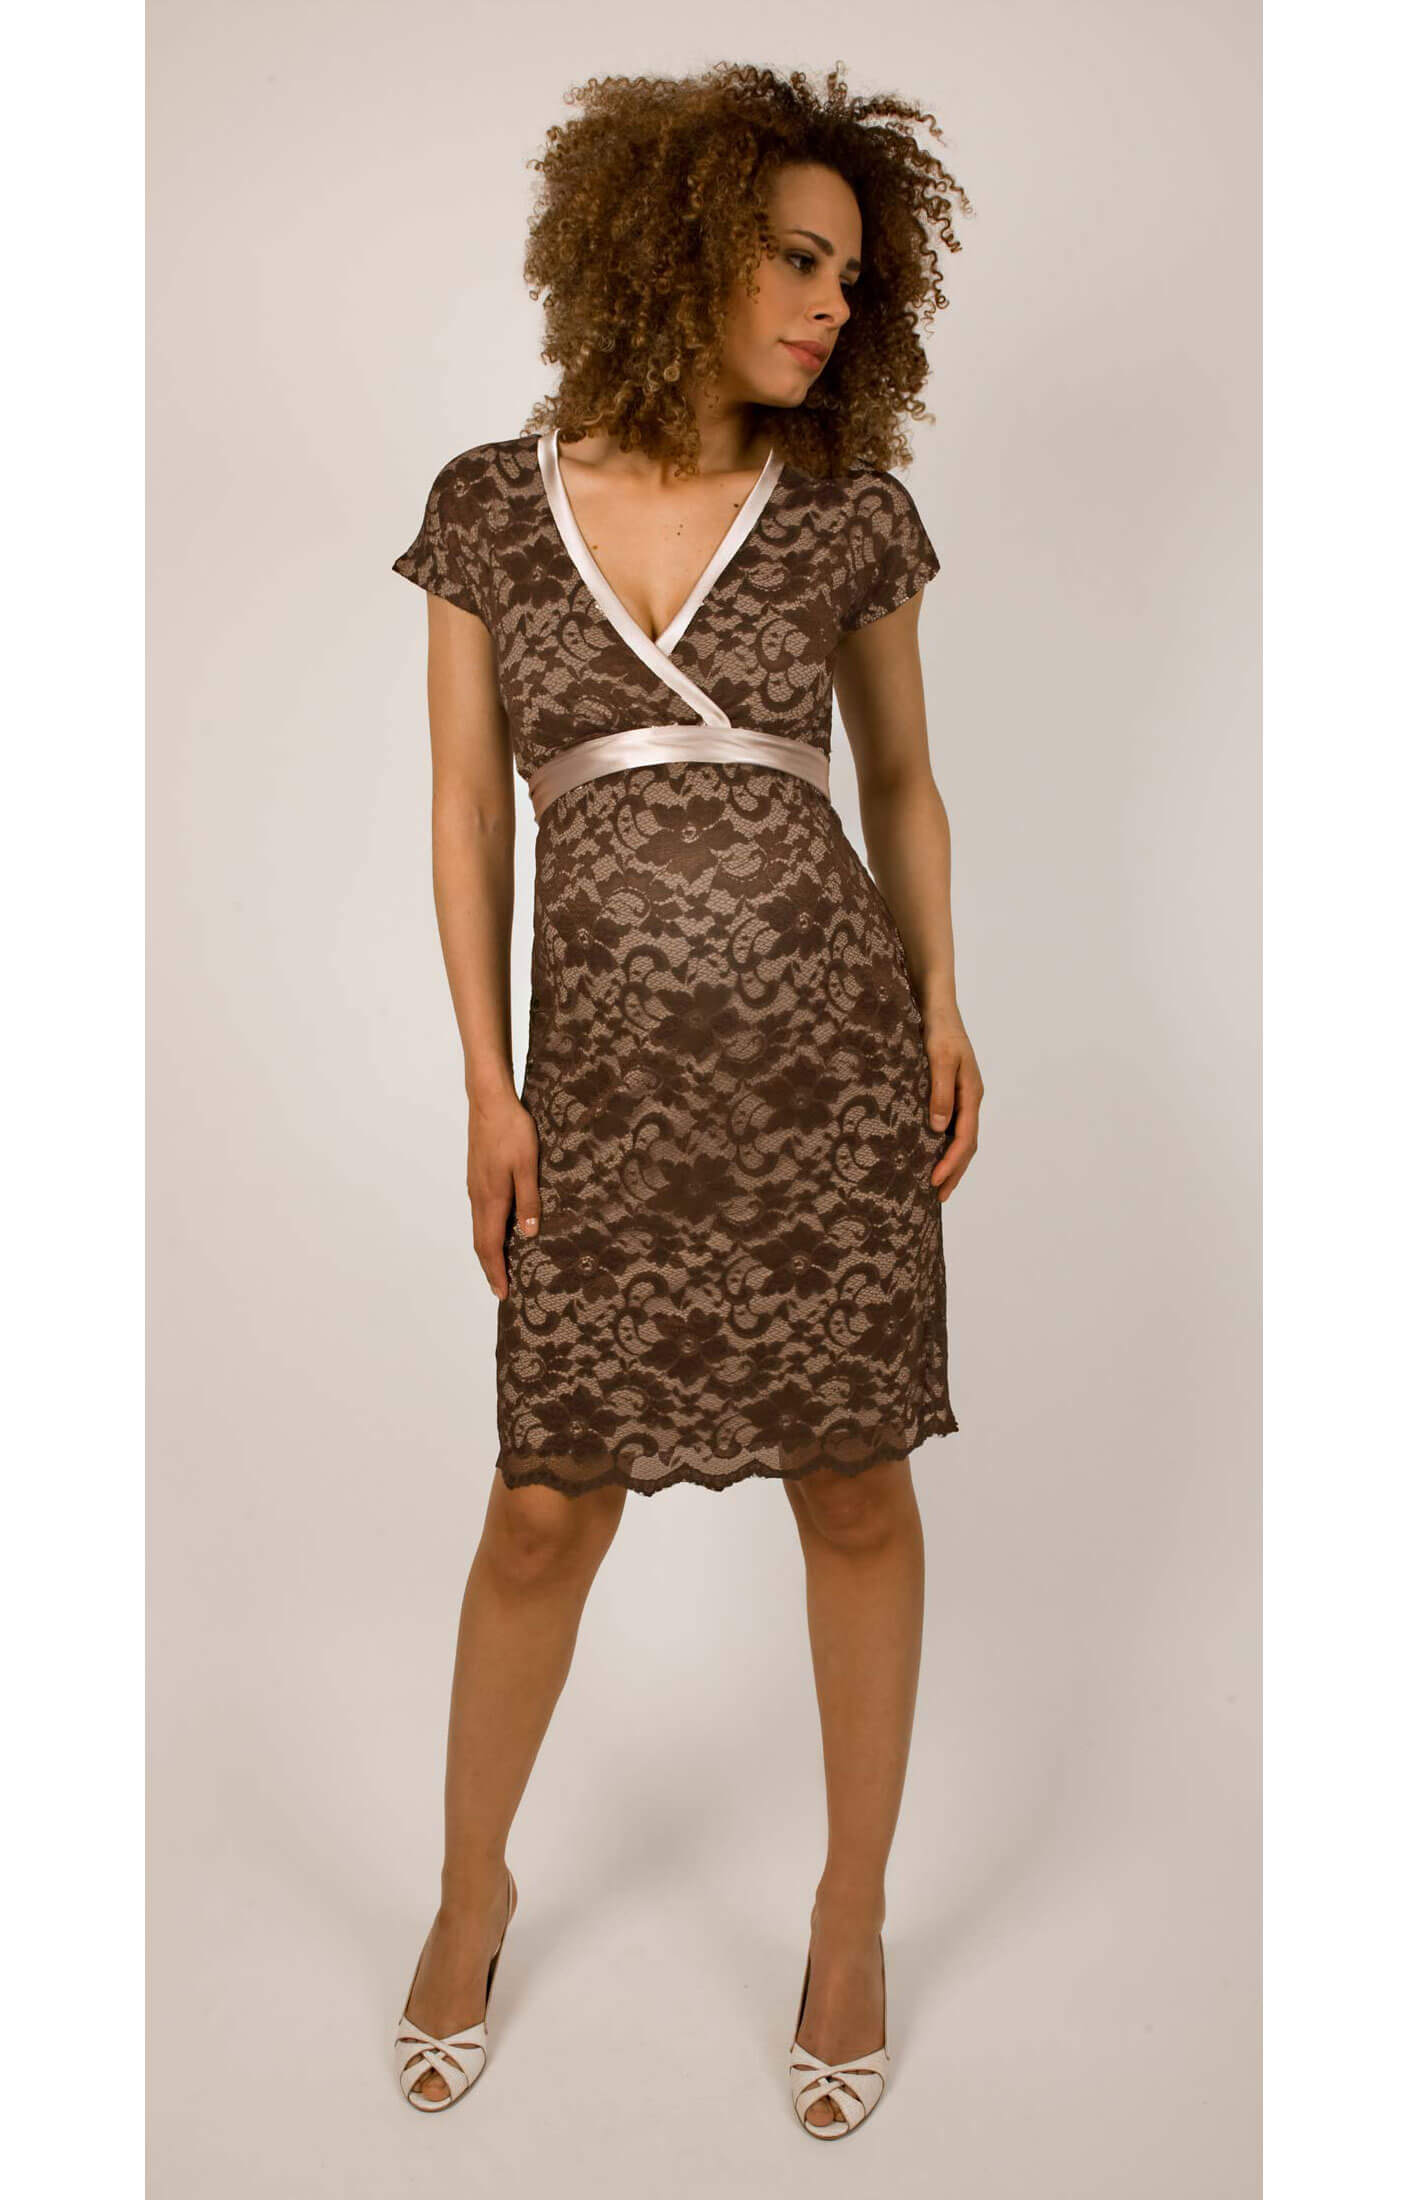 maternity clothing laurm lauren dress mink rose